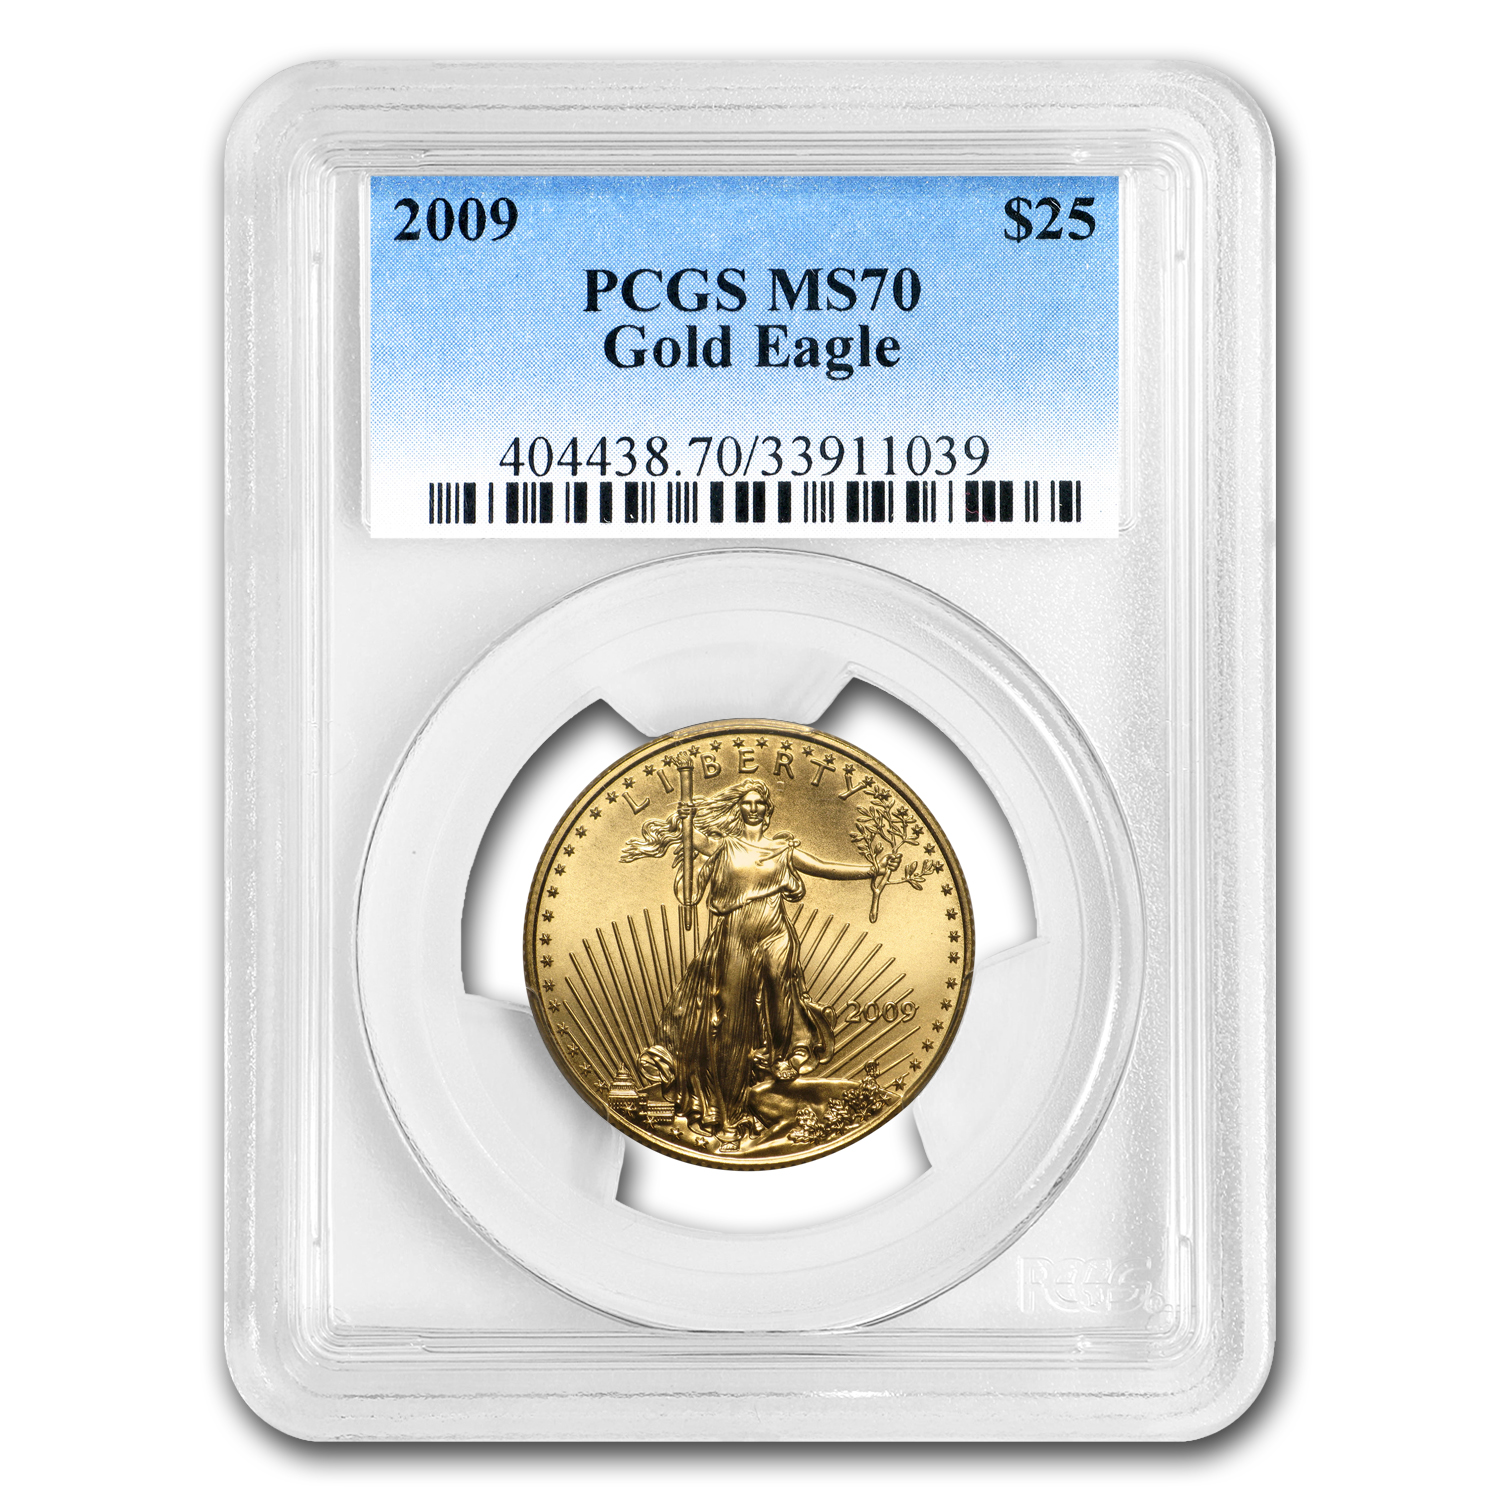 2009 1/2 oz Gold American Eagle MS-70 PCGS